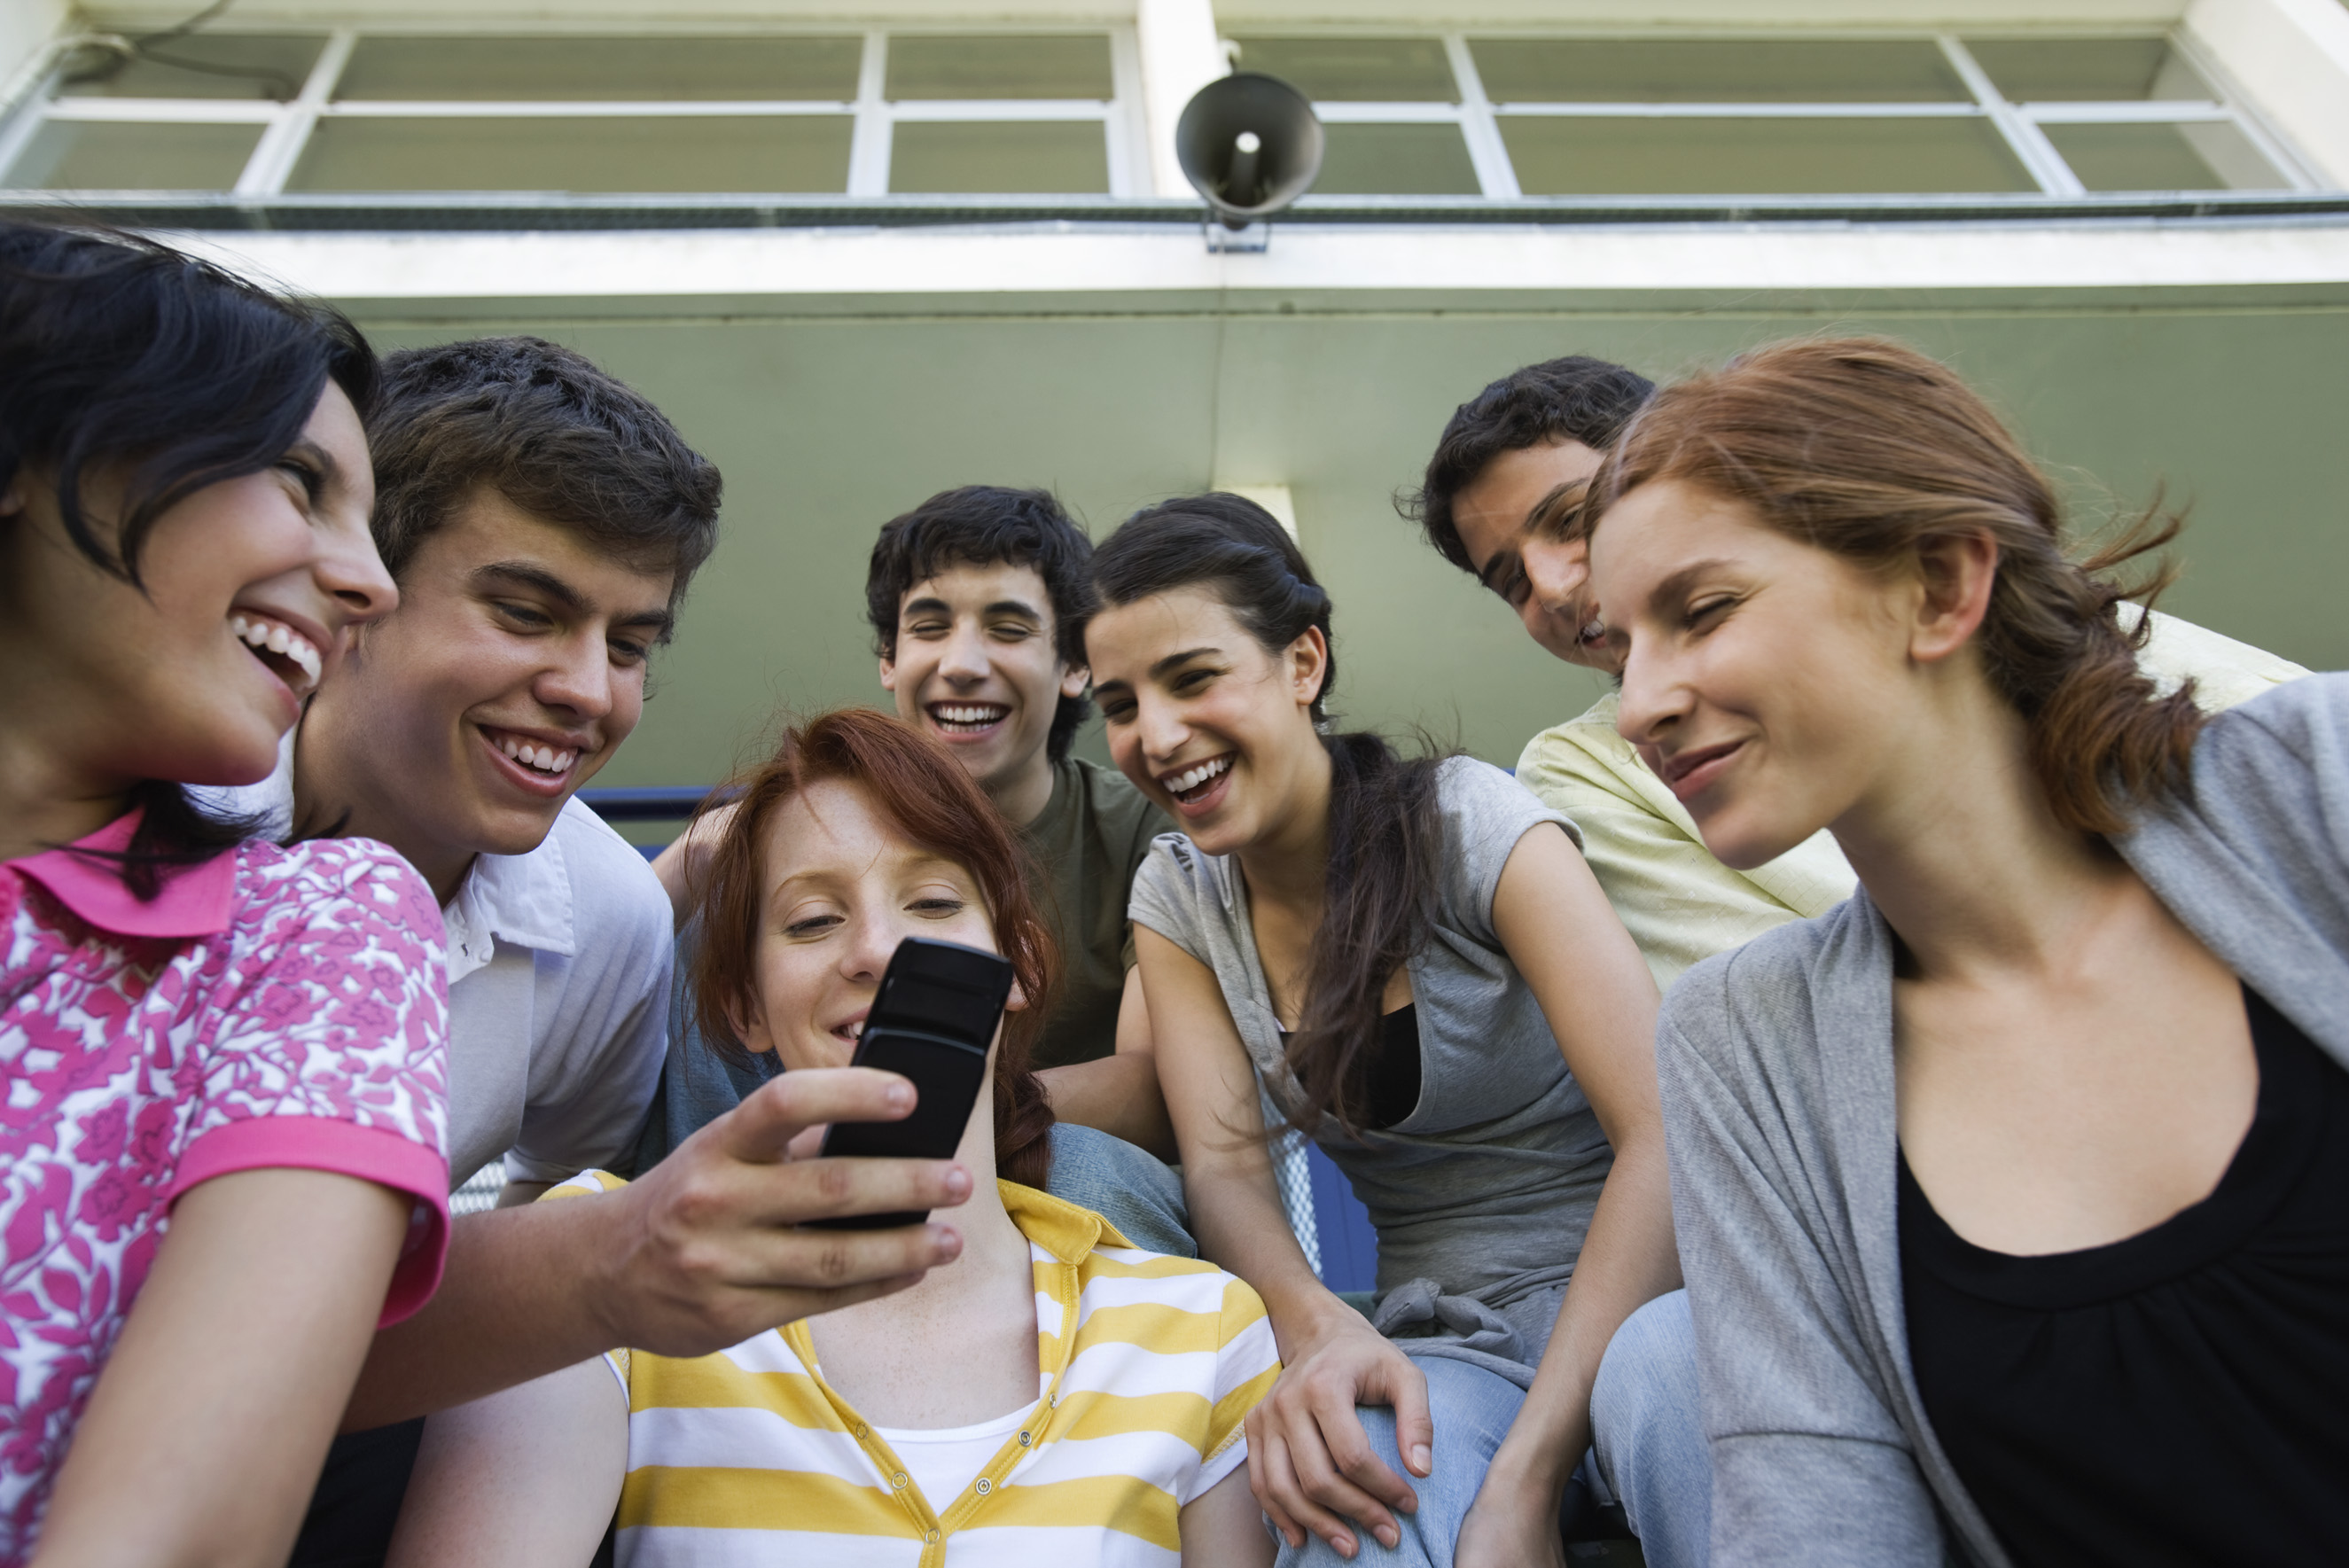 Young people looking at a mobile phone. Source:colourbox.com